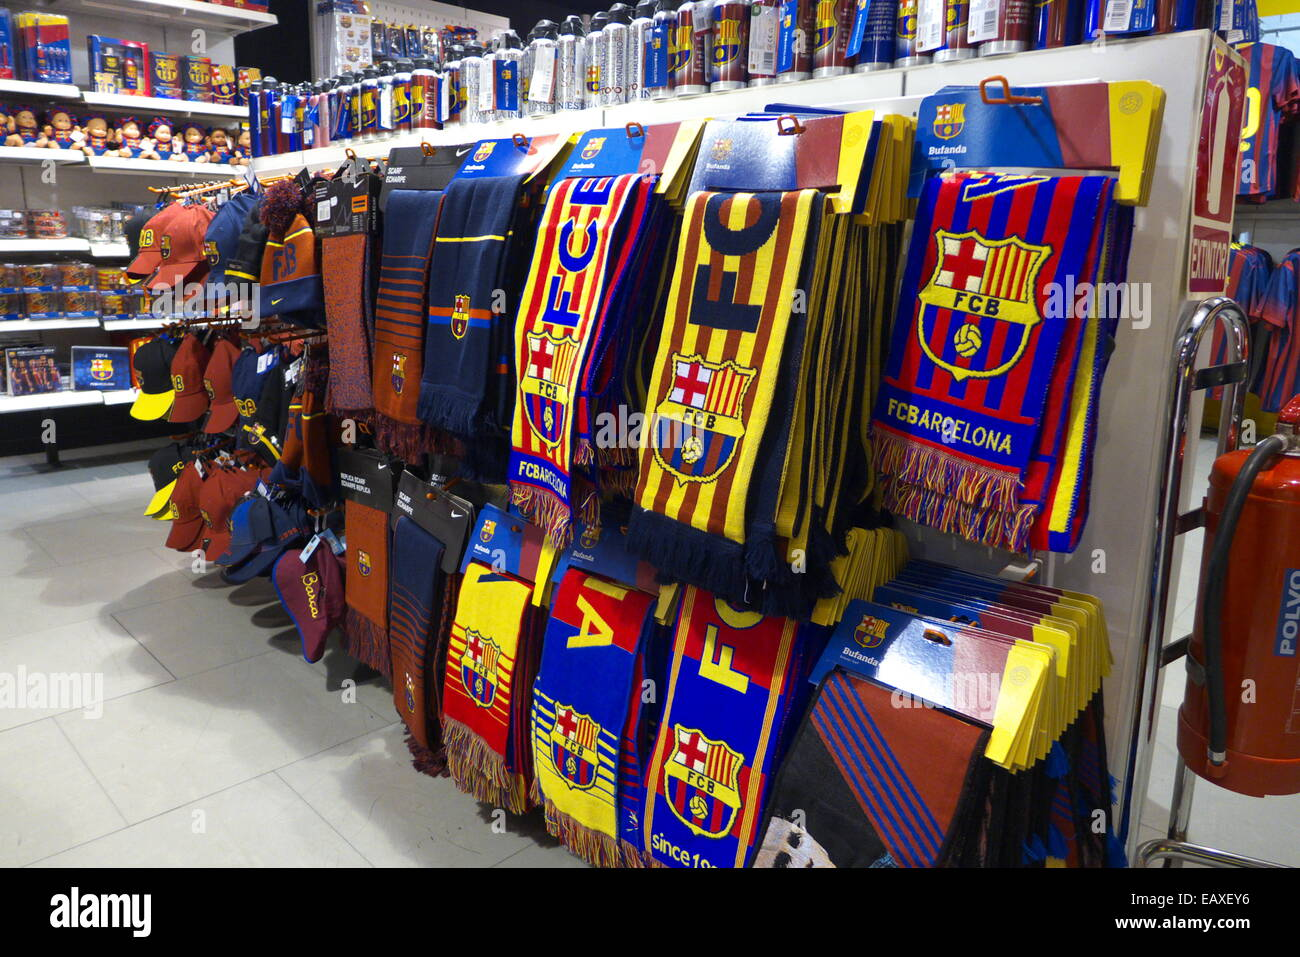 spain catalonia barcelona fc barcelona fan club souvenirs shop stock photo 75570522 alamy. Black Bedroom Furniture Sets. Home Design Ideas